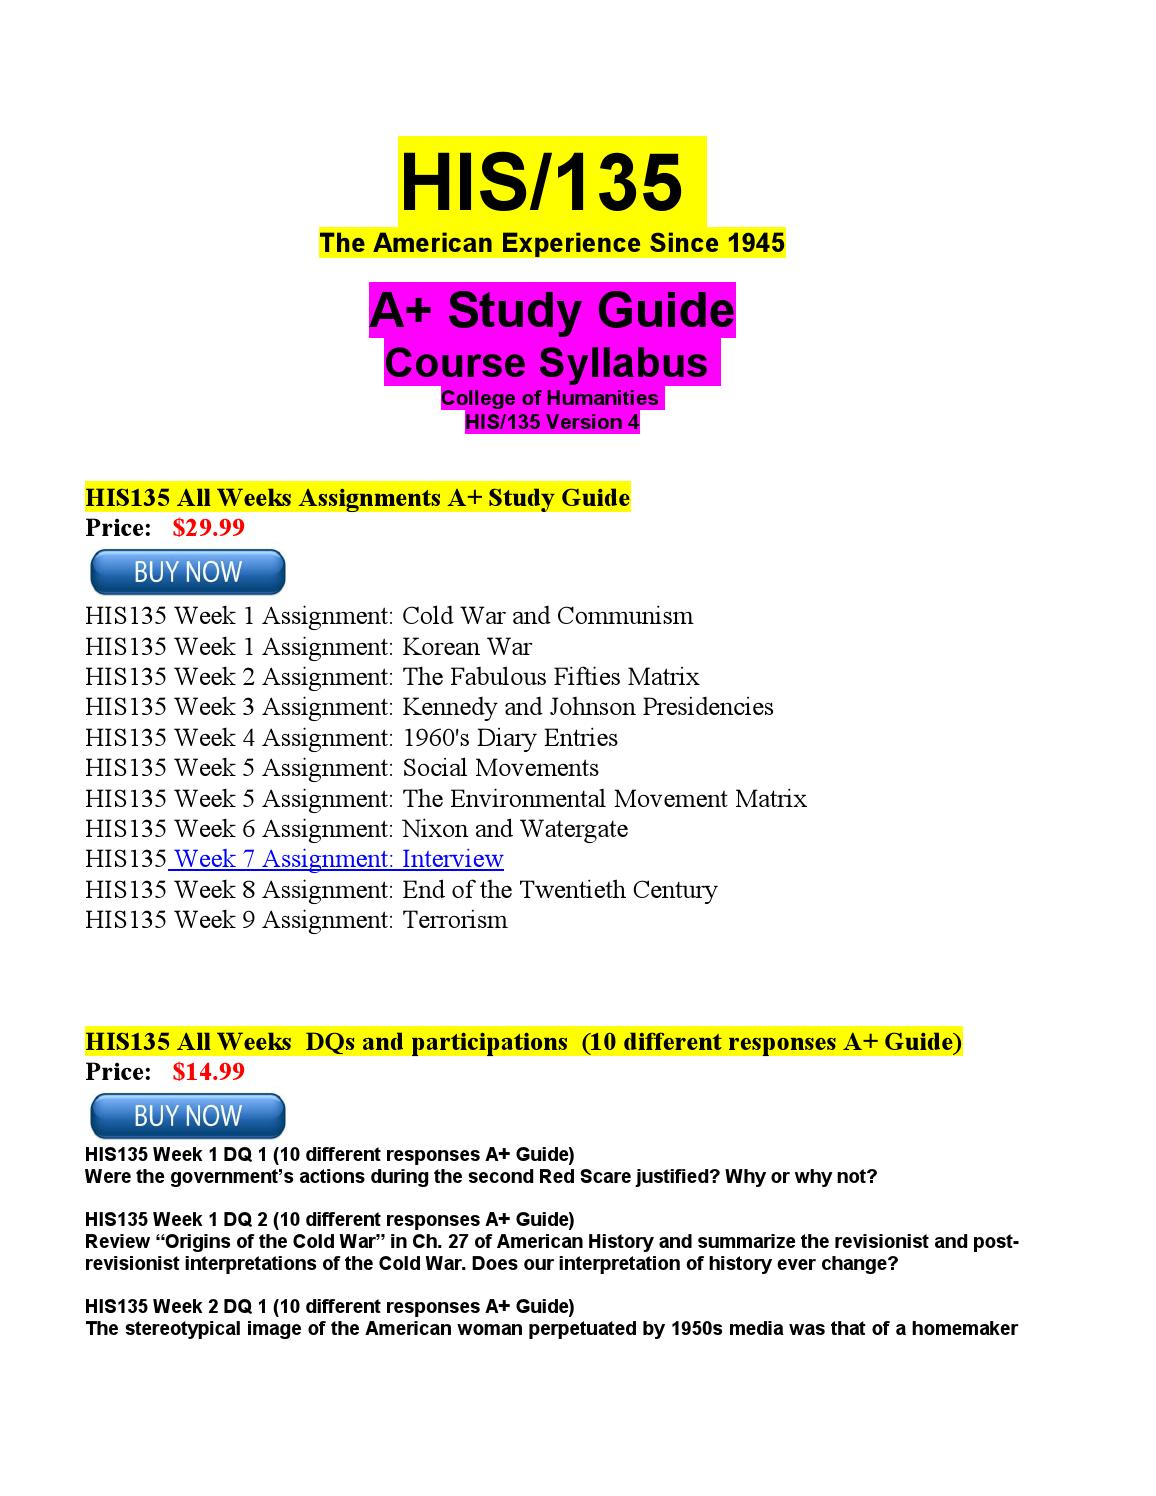 bios 135 week 1 dq 2 Follow the link to get tutorial   this document of bios 135 week 1 quiz includes answers to the next questions: 1 the most effectiv.